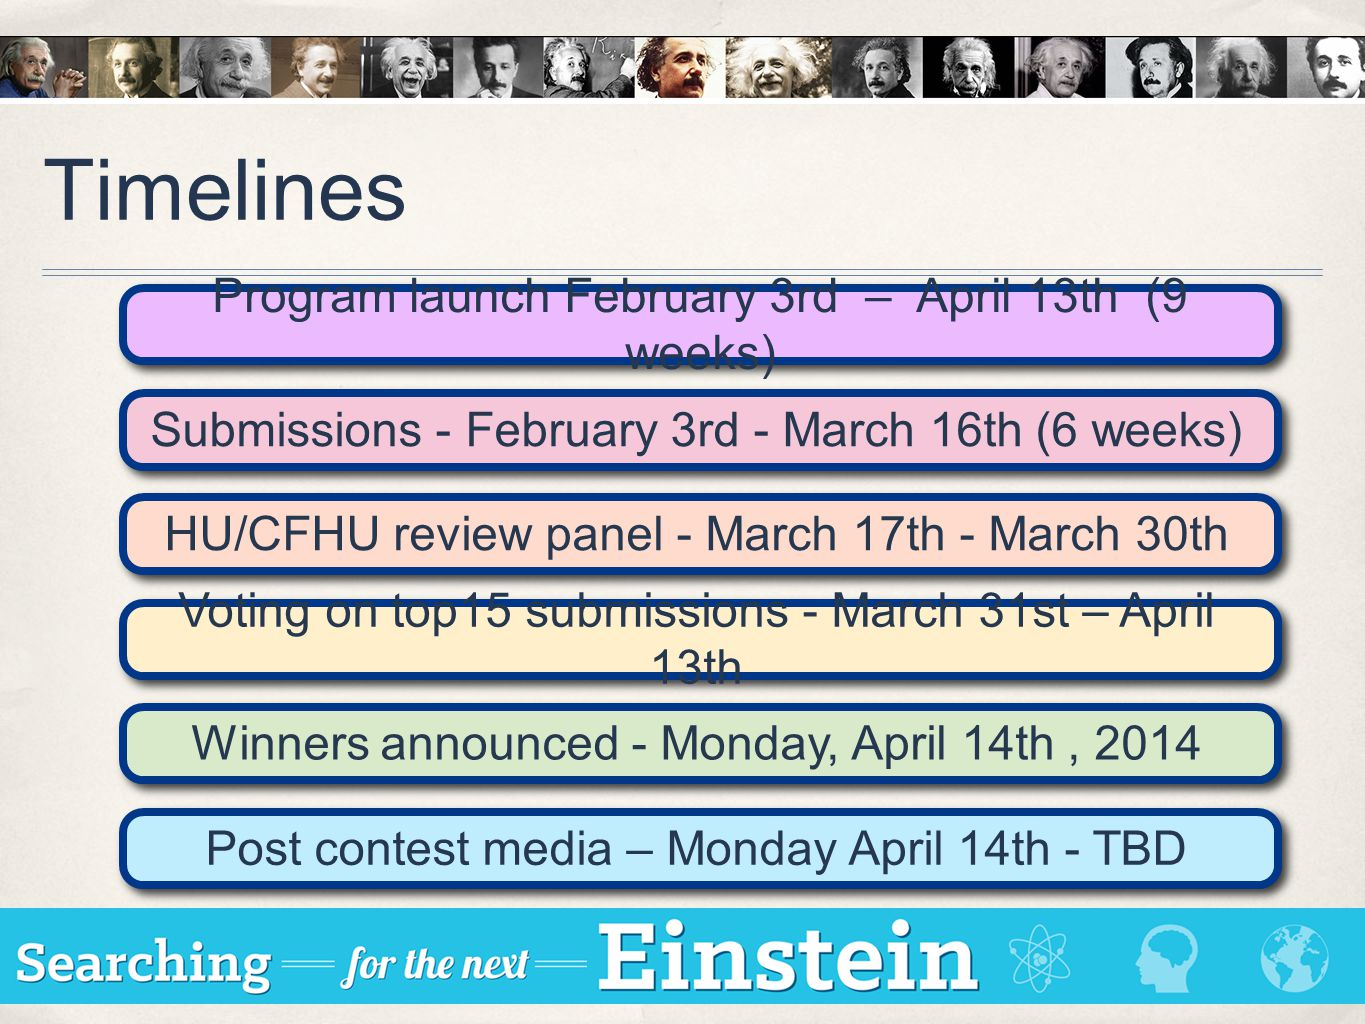 Timelines Program launch February 3rd – April 13th (9 weeks) Submissions - February 3rd - March 16th (6 weeks)HU/CFHU review panel - March 17th - March 30th Voting on top15 submissions - March 31st – April 13th Winners announced - Monday, April 14th, 2014Post contest media – Monday April 14th - TBD